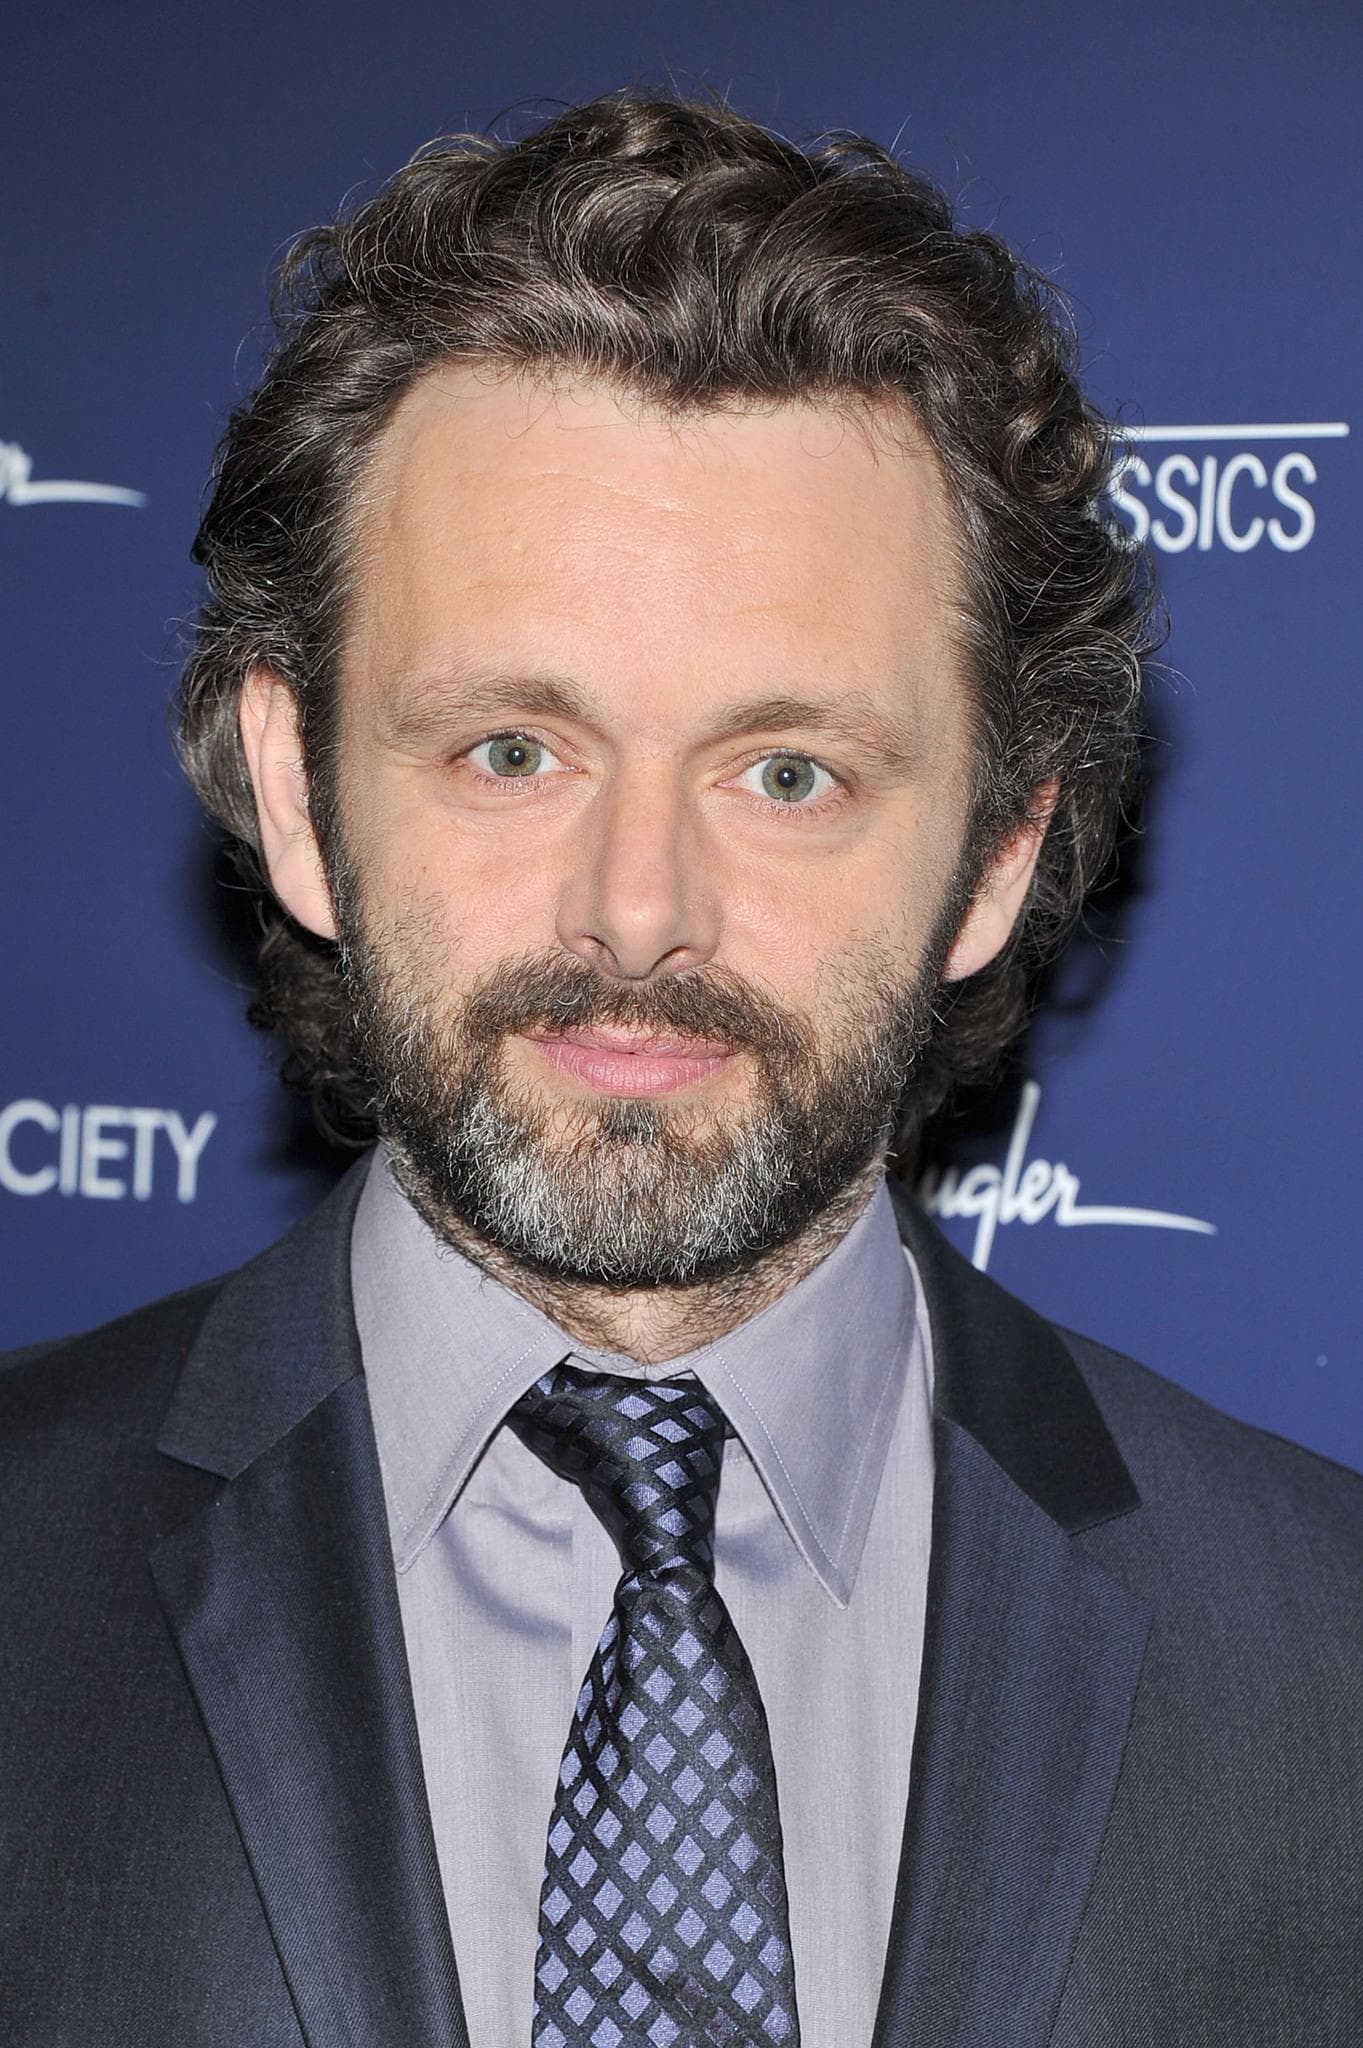 Michael Sheen For mobile